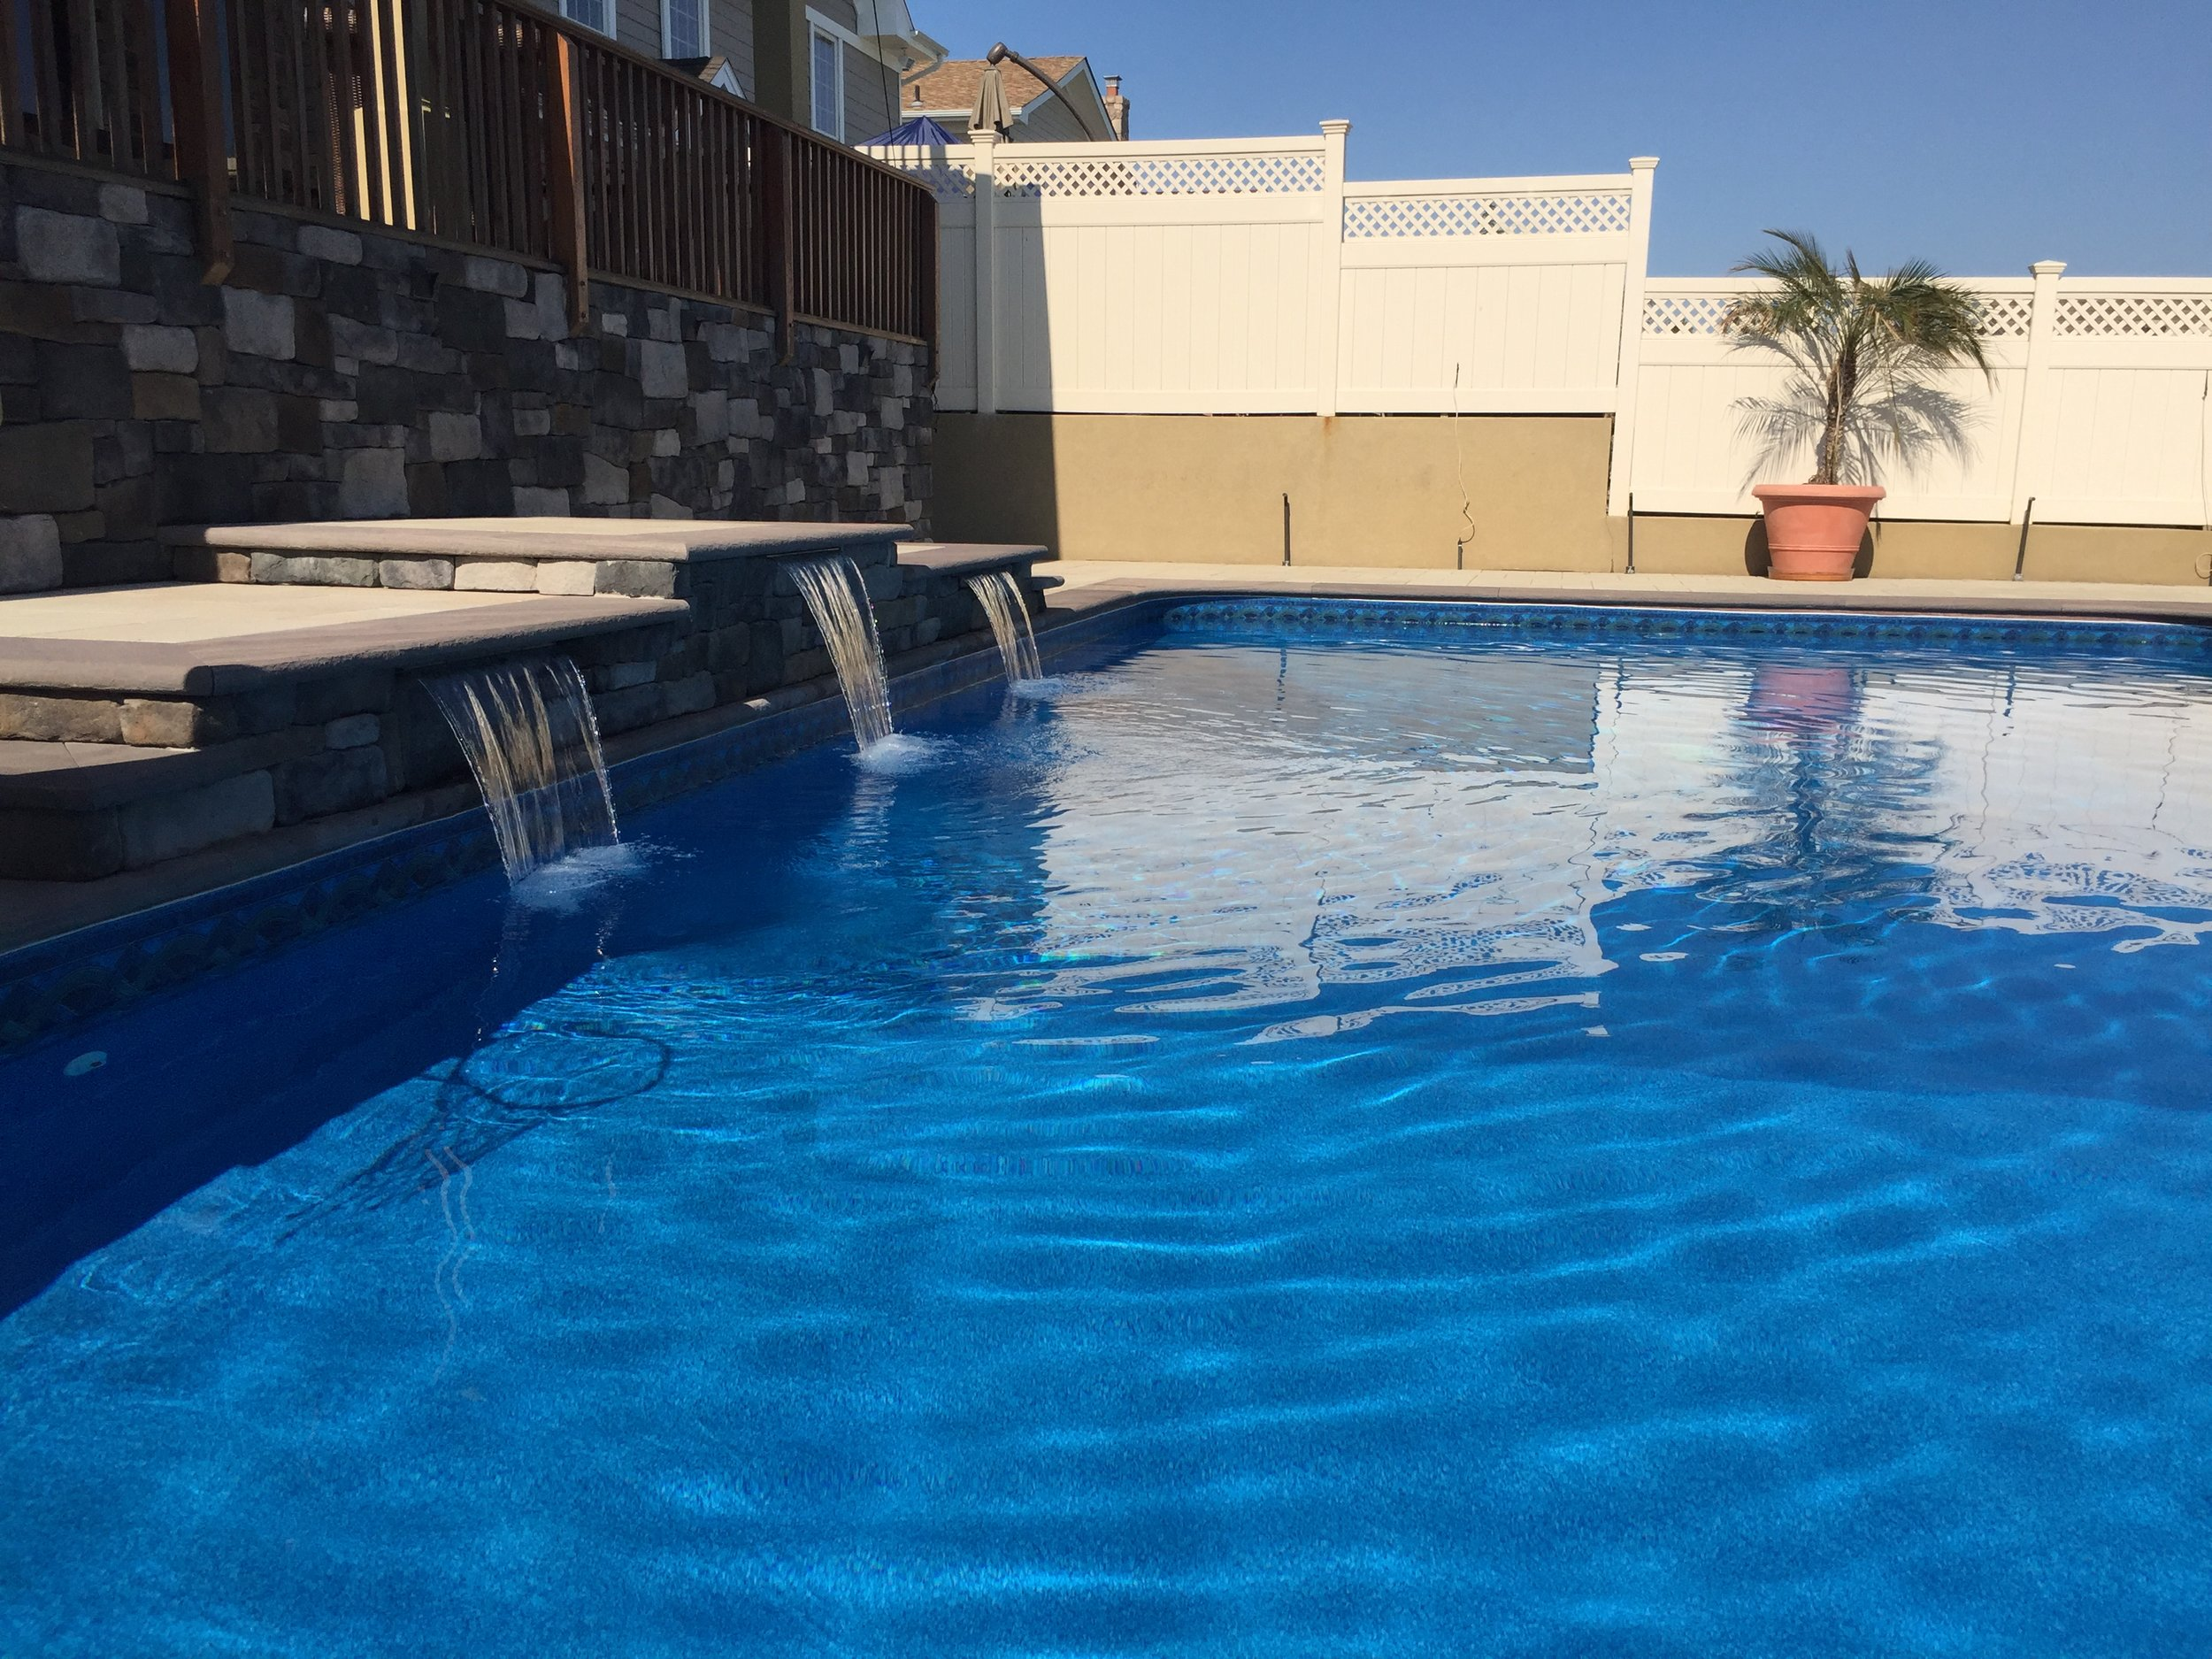 Top pool water feature landscape design company in Long Island, NY